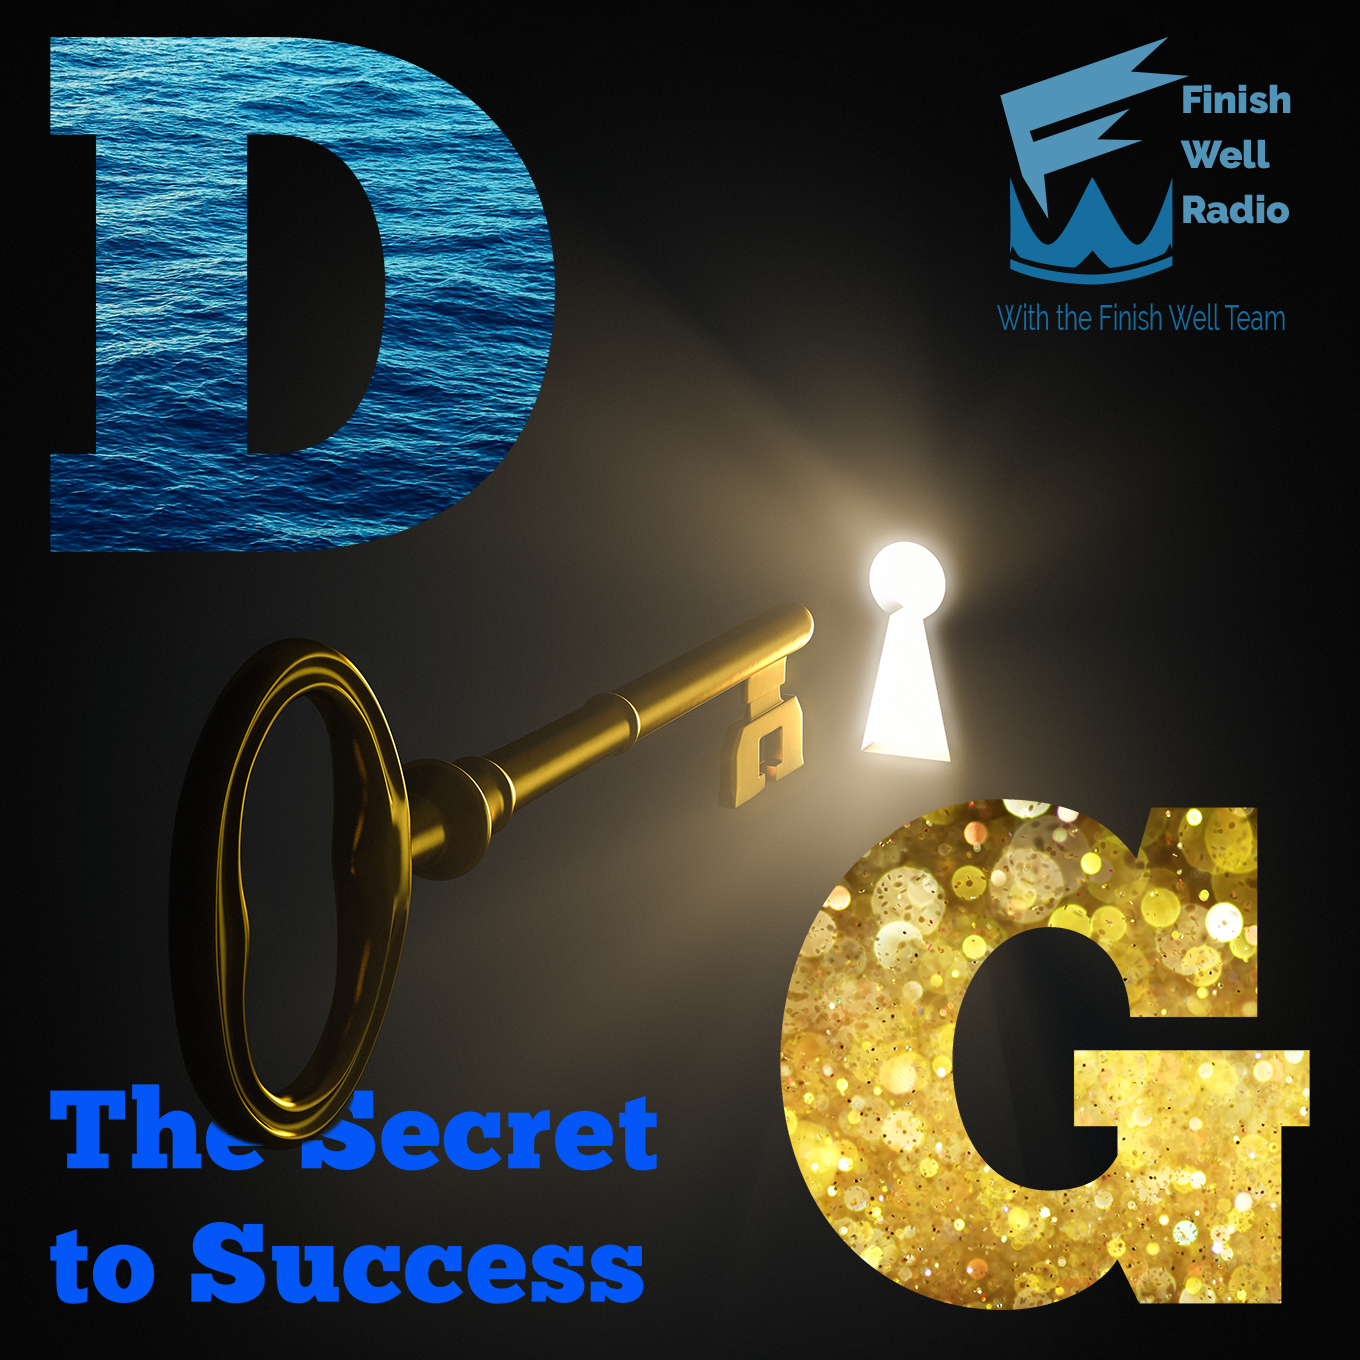 Finish Well Radio, Podcast #053, DG: The Secret to Success